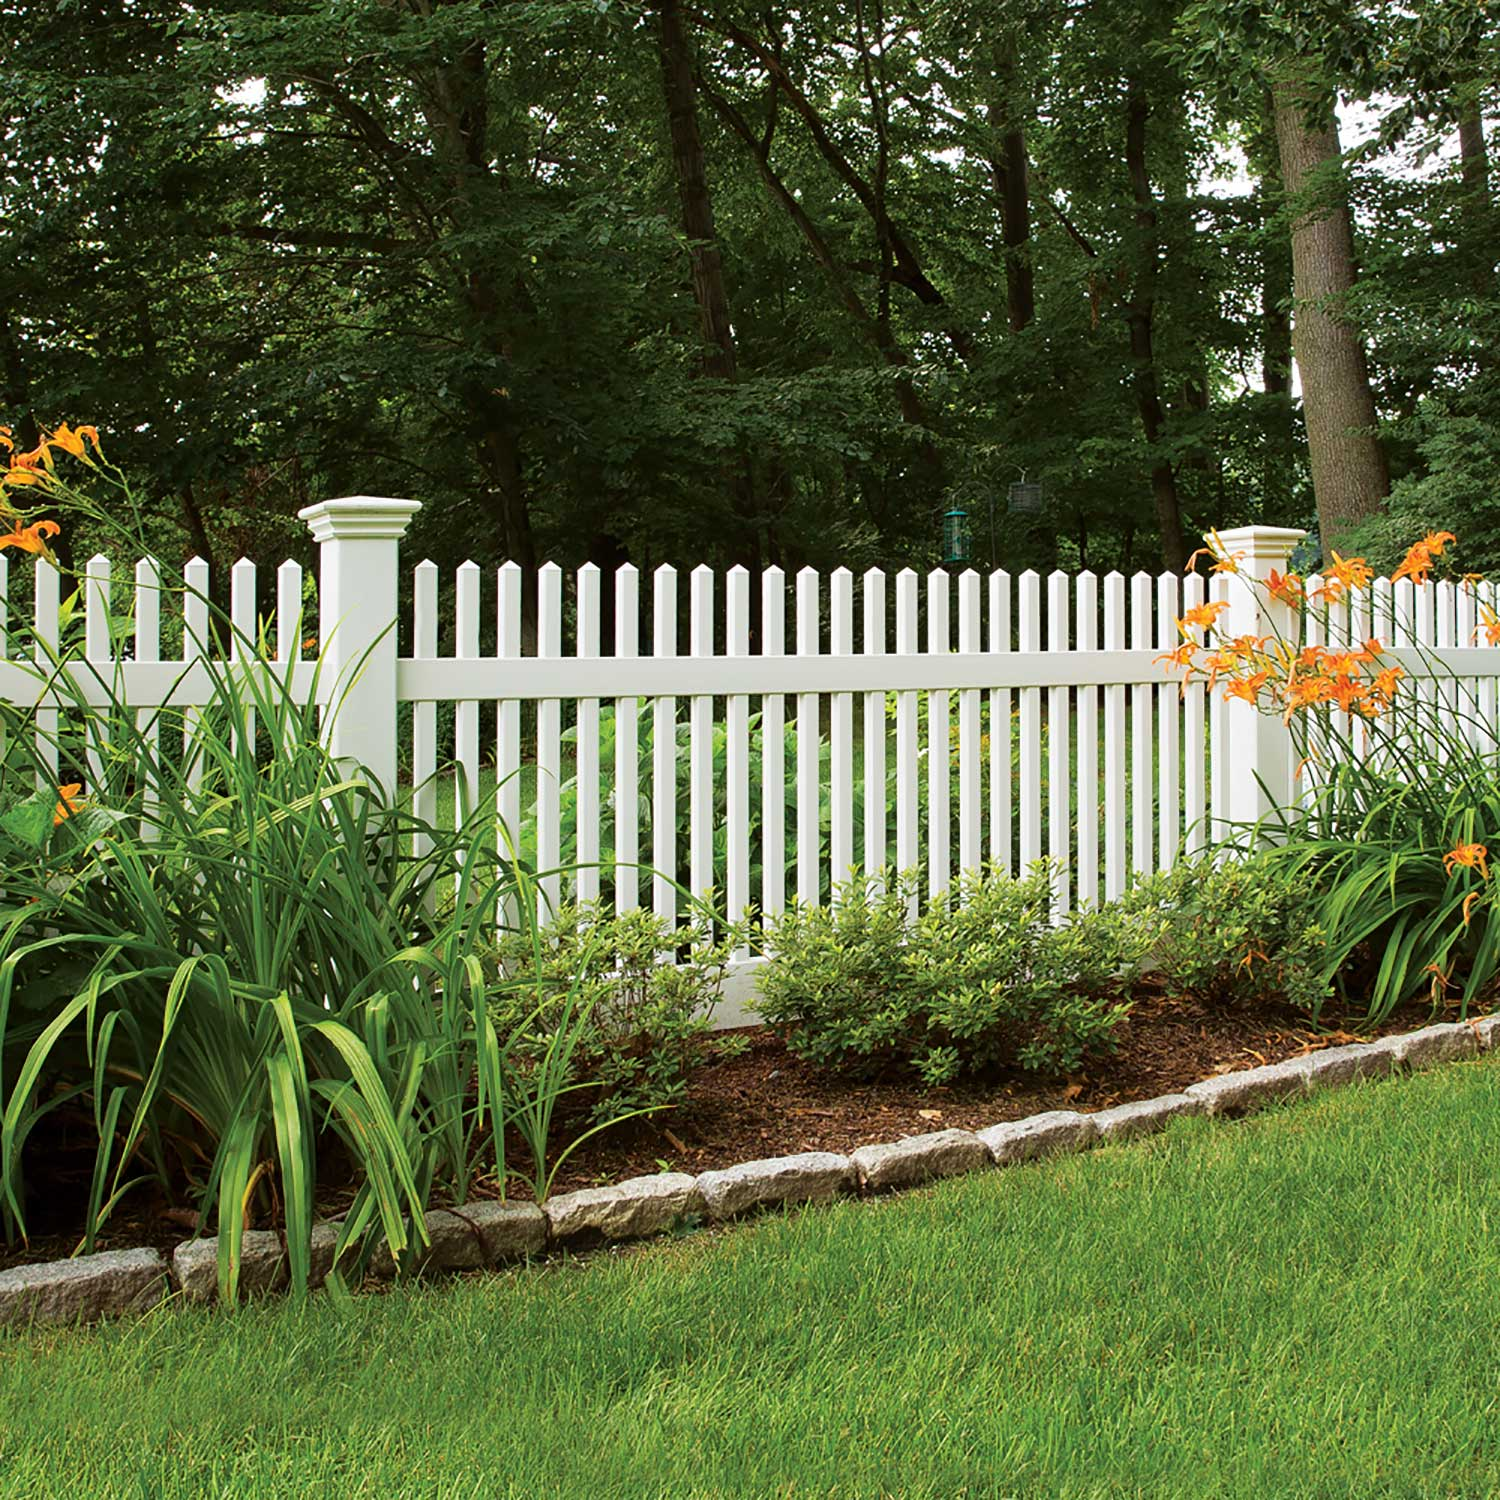 Residential Decorative Fencing & Gates | Peerless Fence